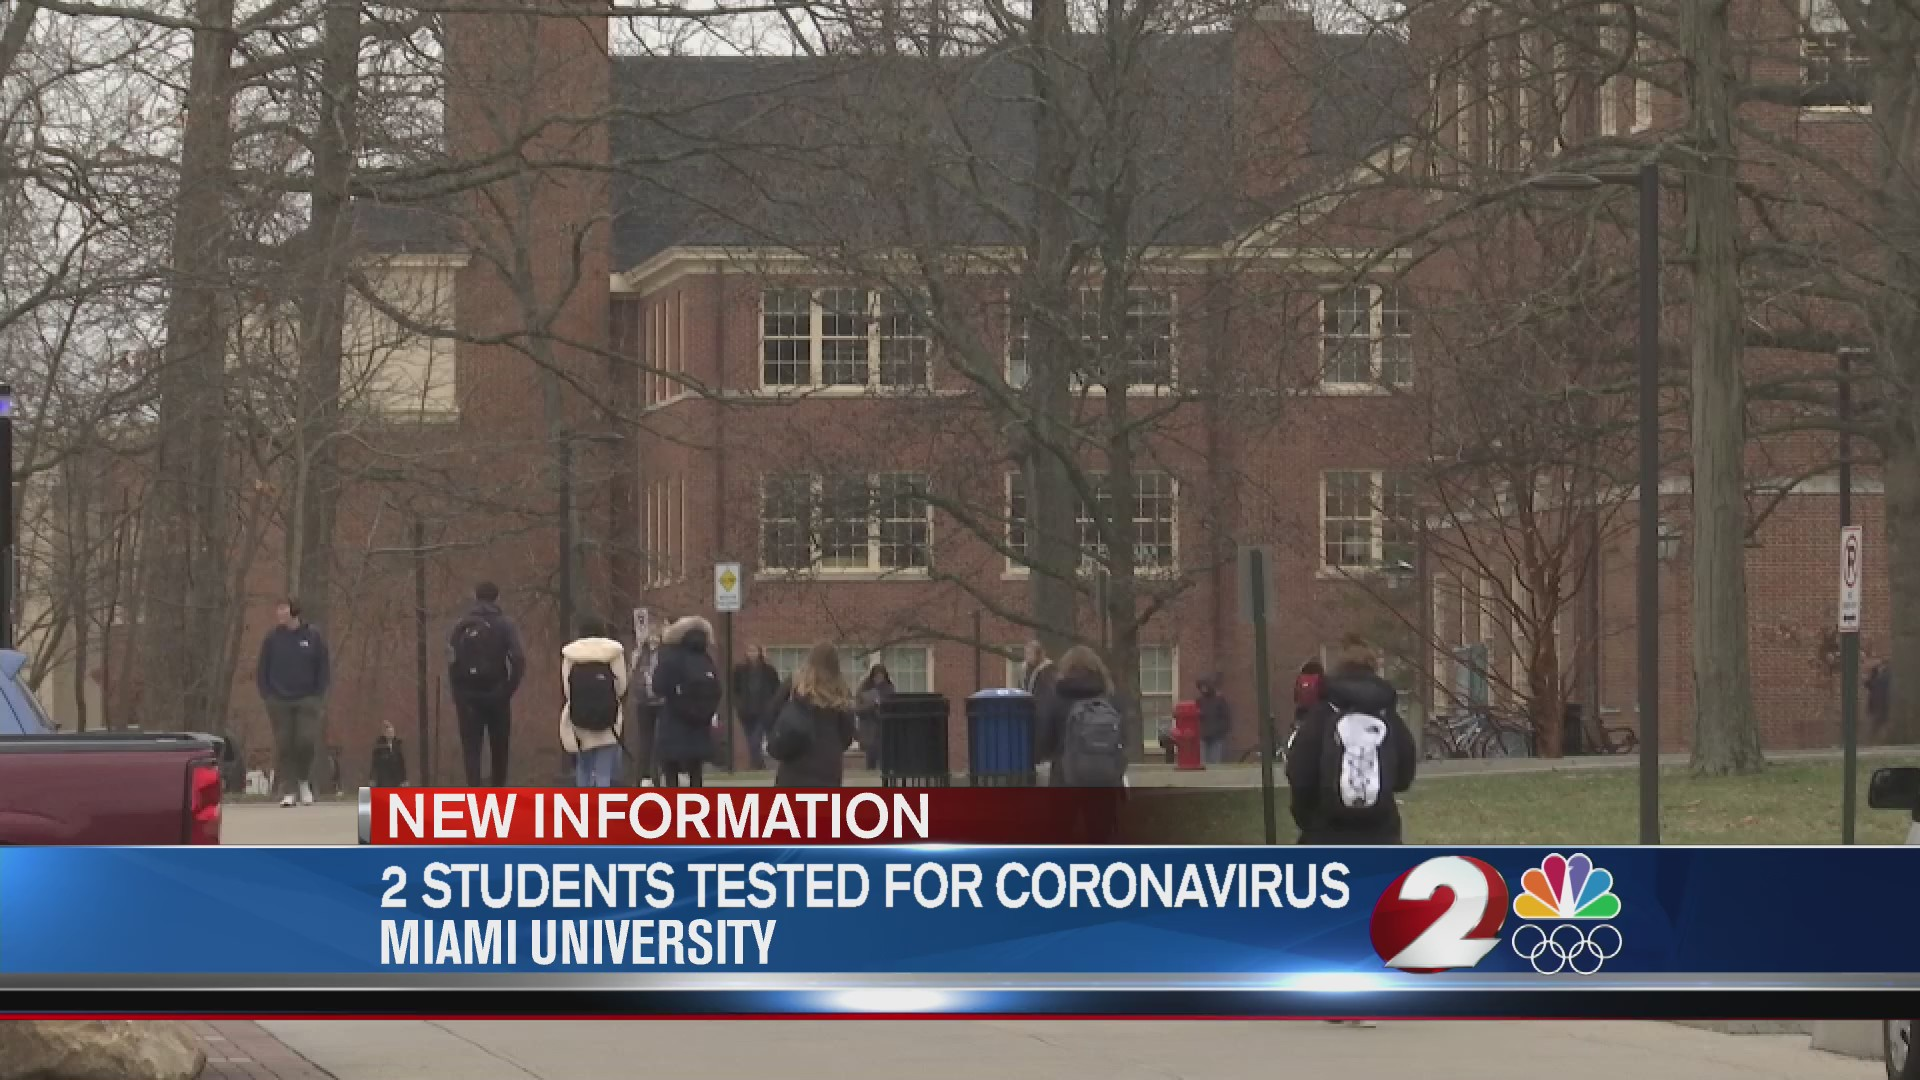 2 students tested for coronavirus